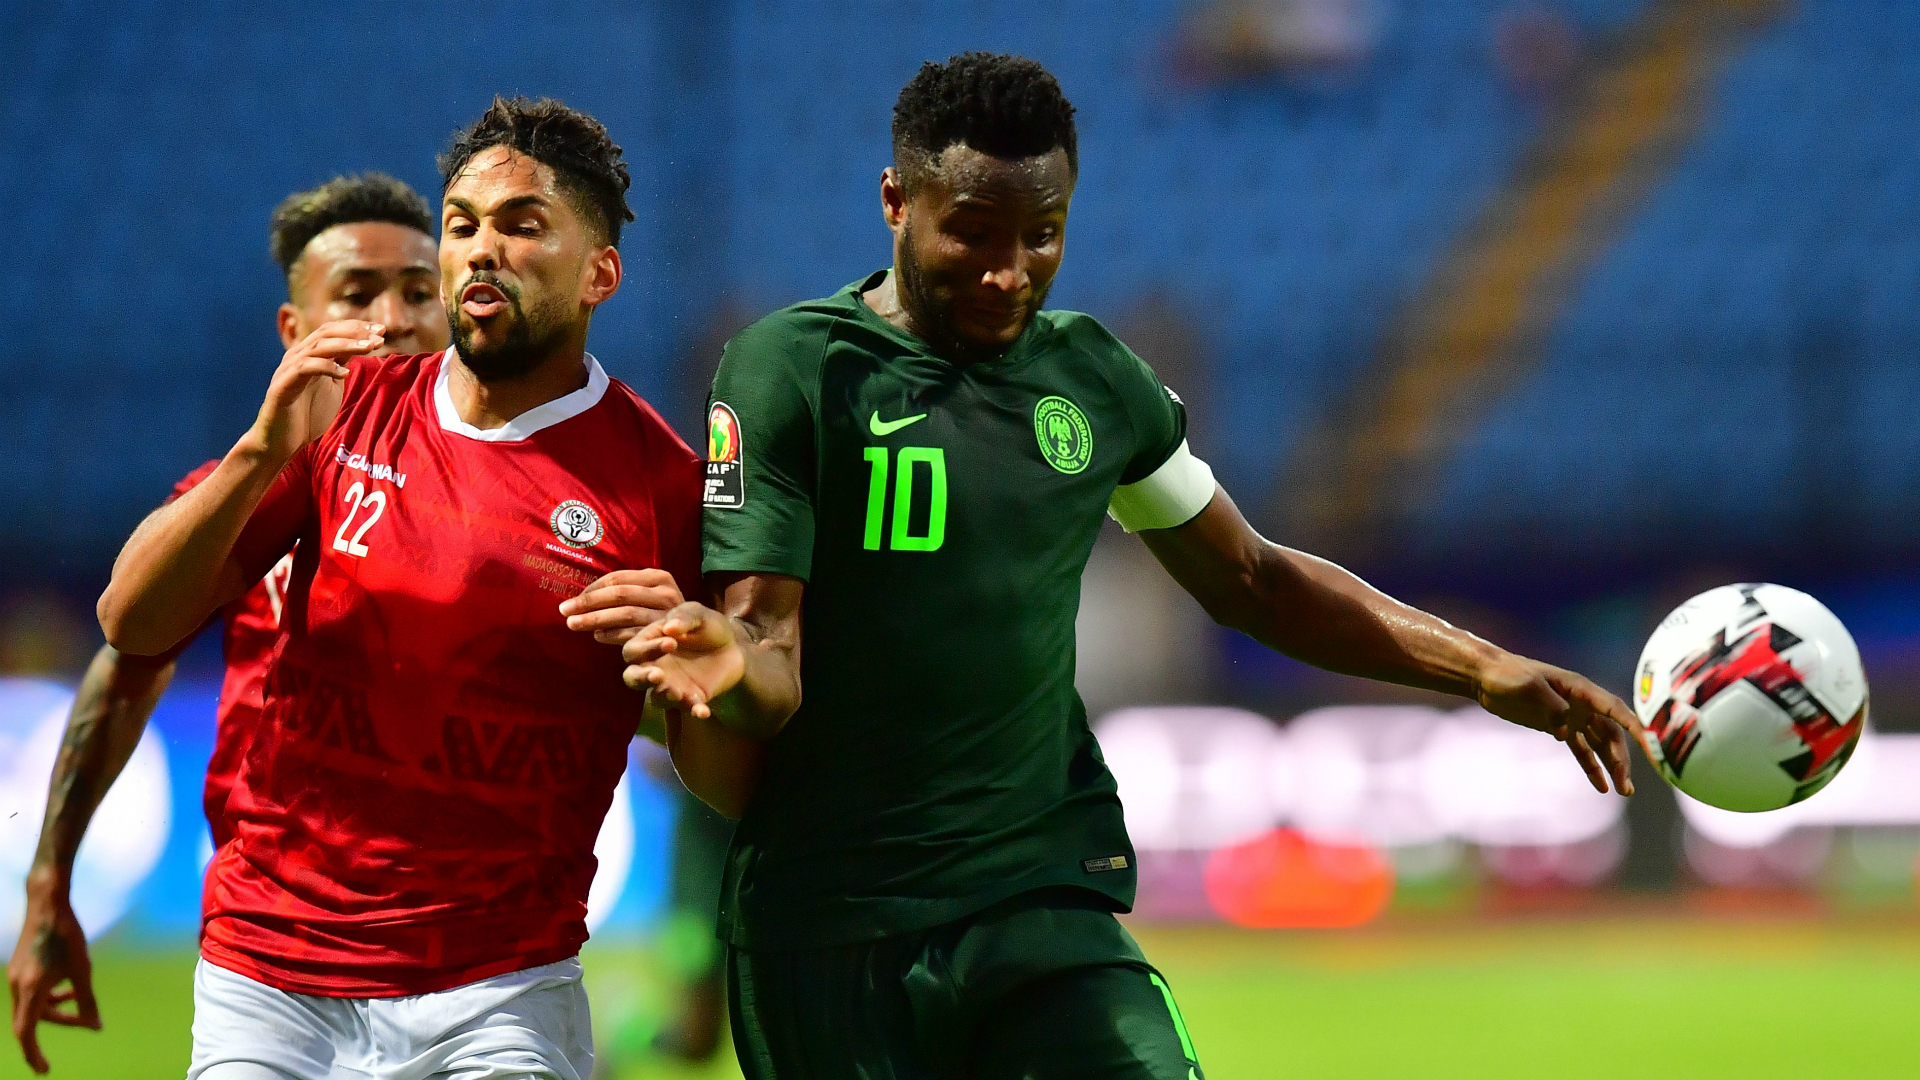 Nigeria captain John Obi Mikel retires from international football